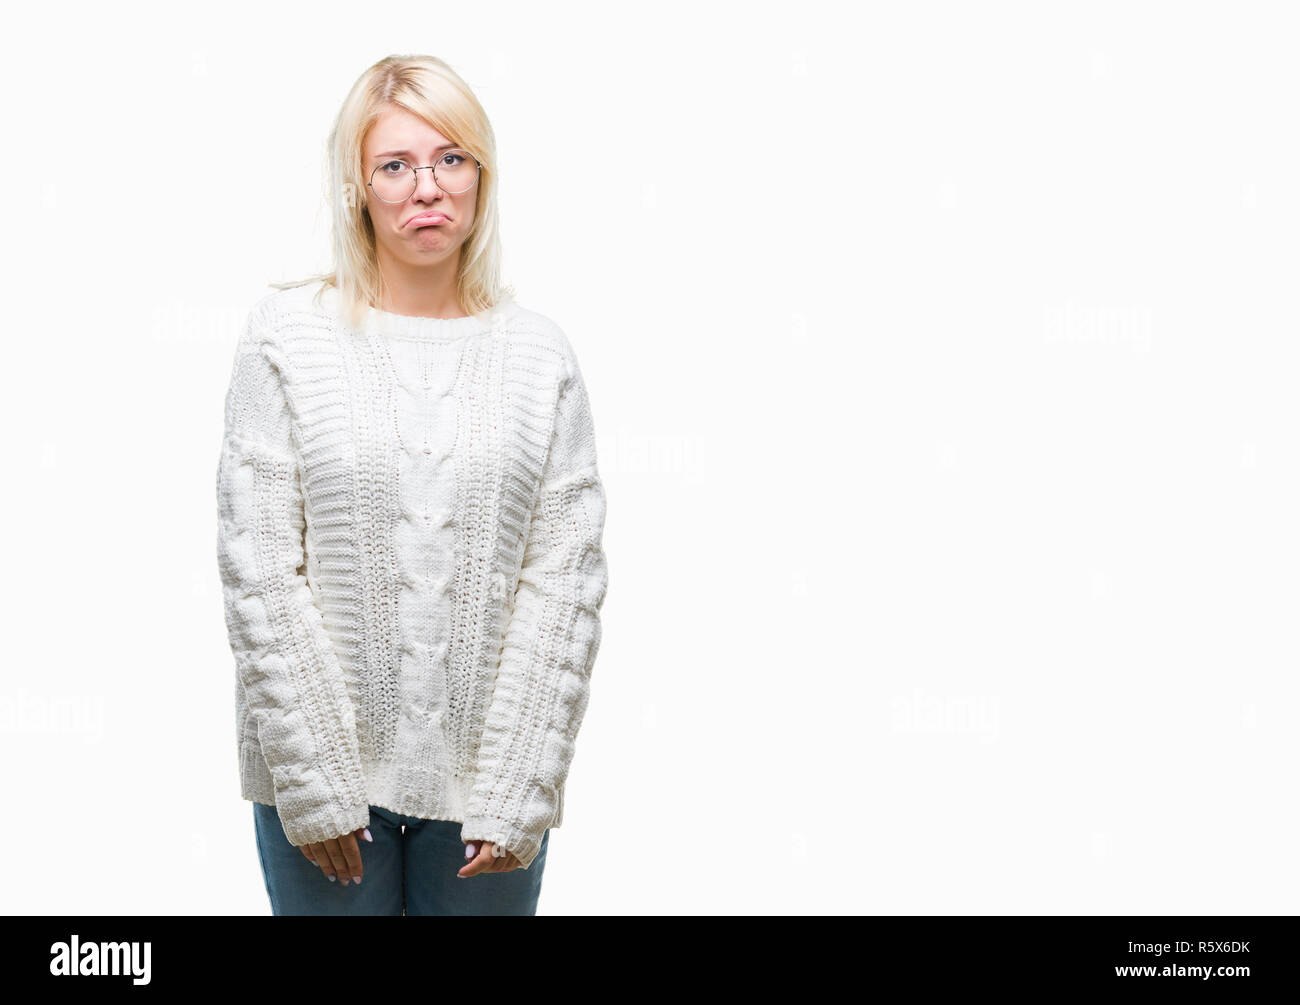 Young beautiful blonde woman wearing winter sweater and glasses over isolated background depressed and worry for distress, crying angry and afraid. Sa - Stock Image